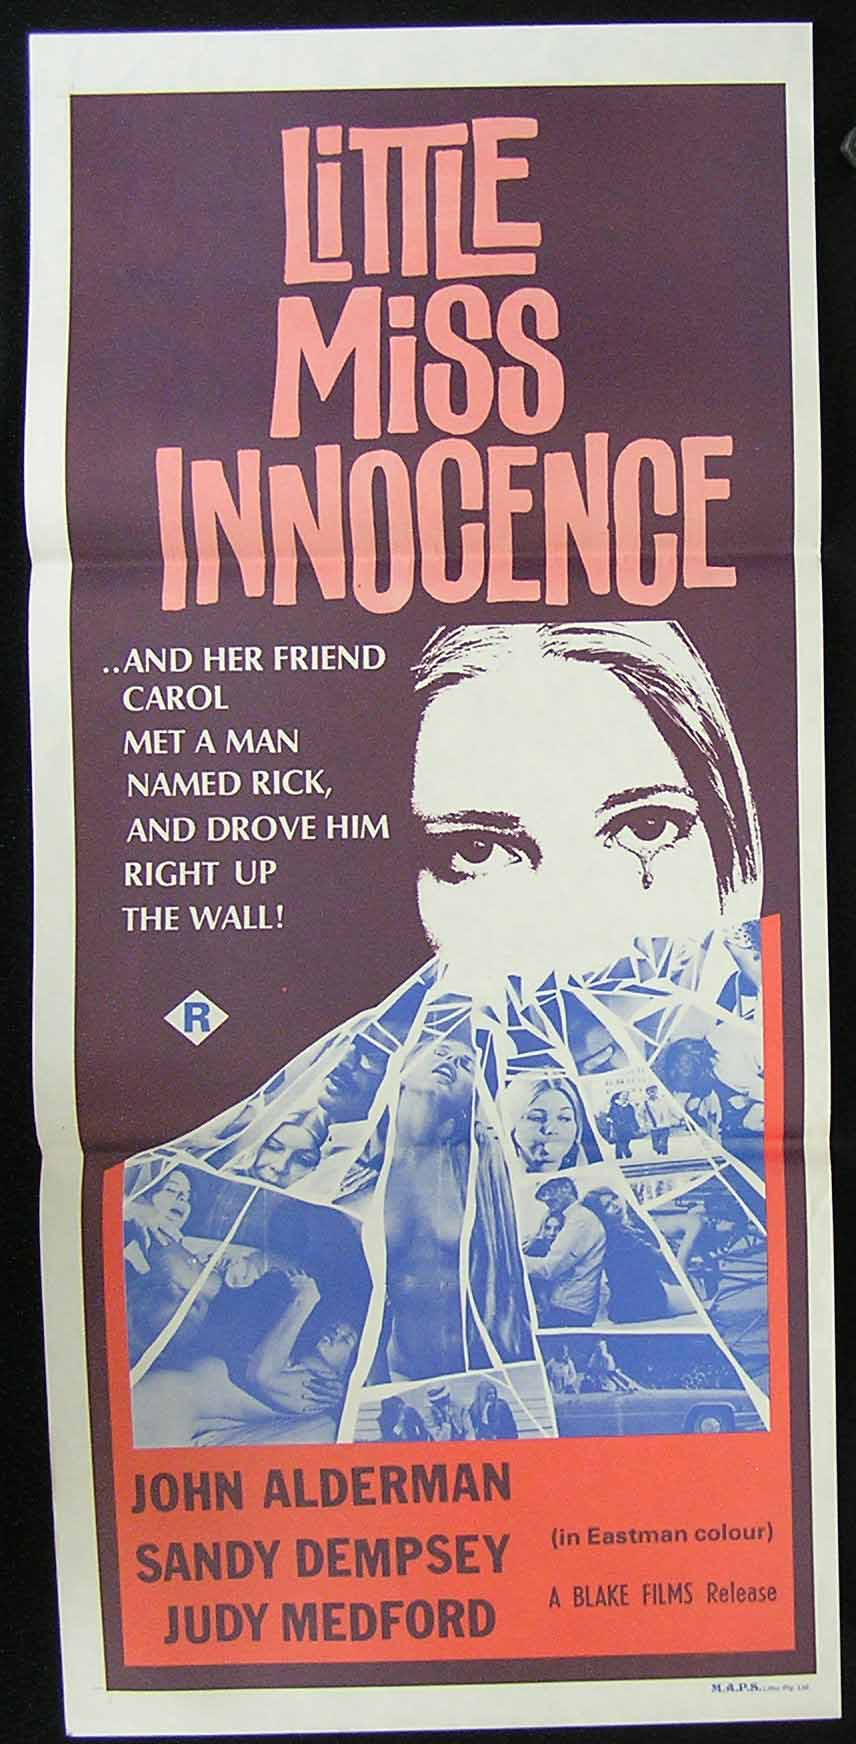 Little Miss Innocence (1973)